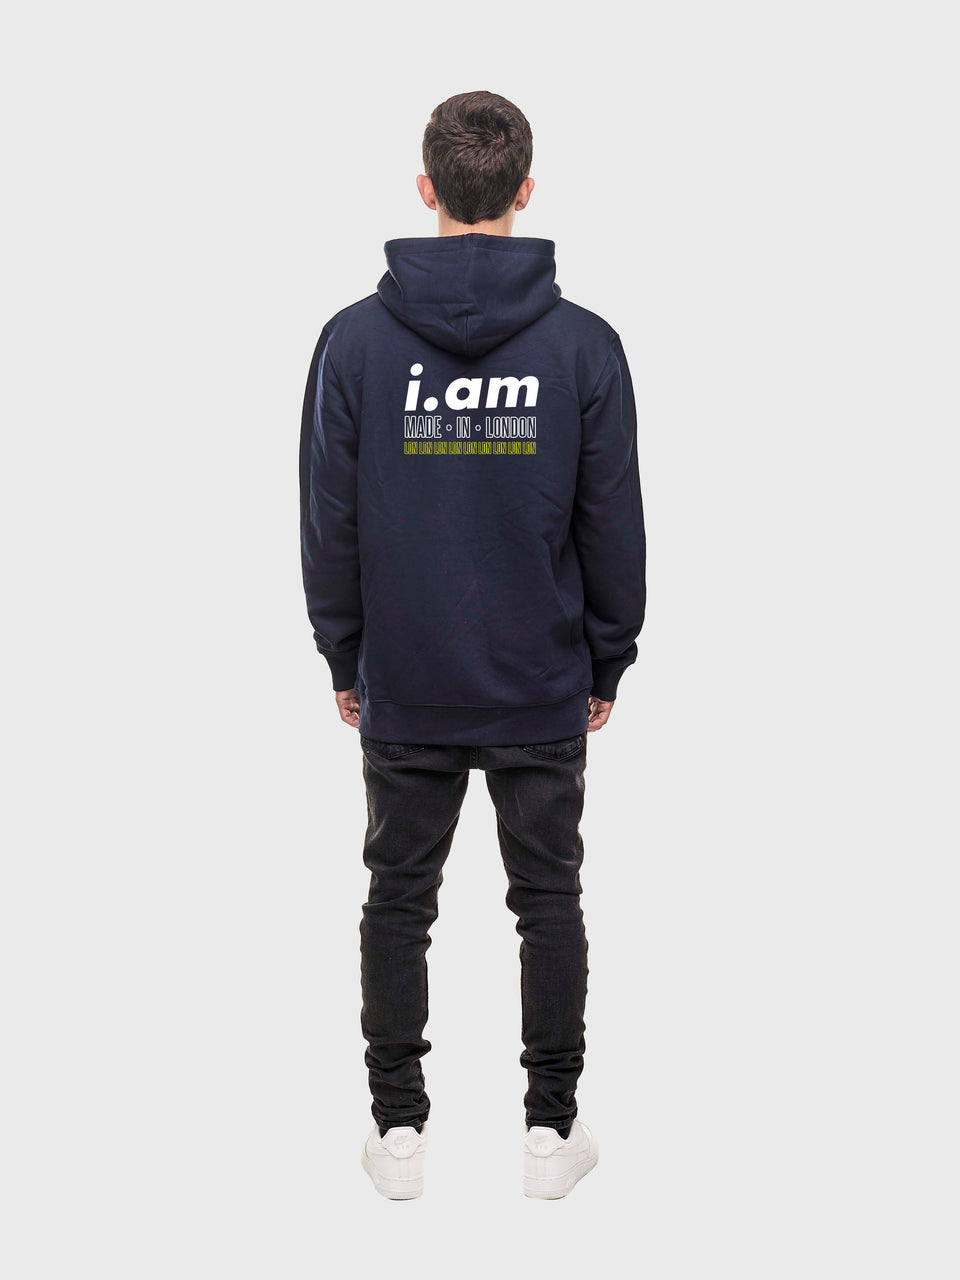 Made in London - Navy - Unisex pull over hoodie